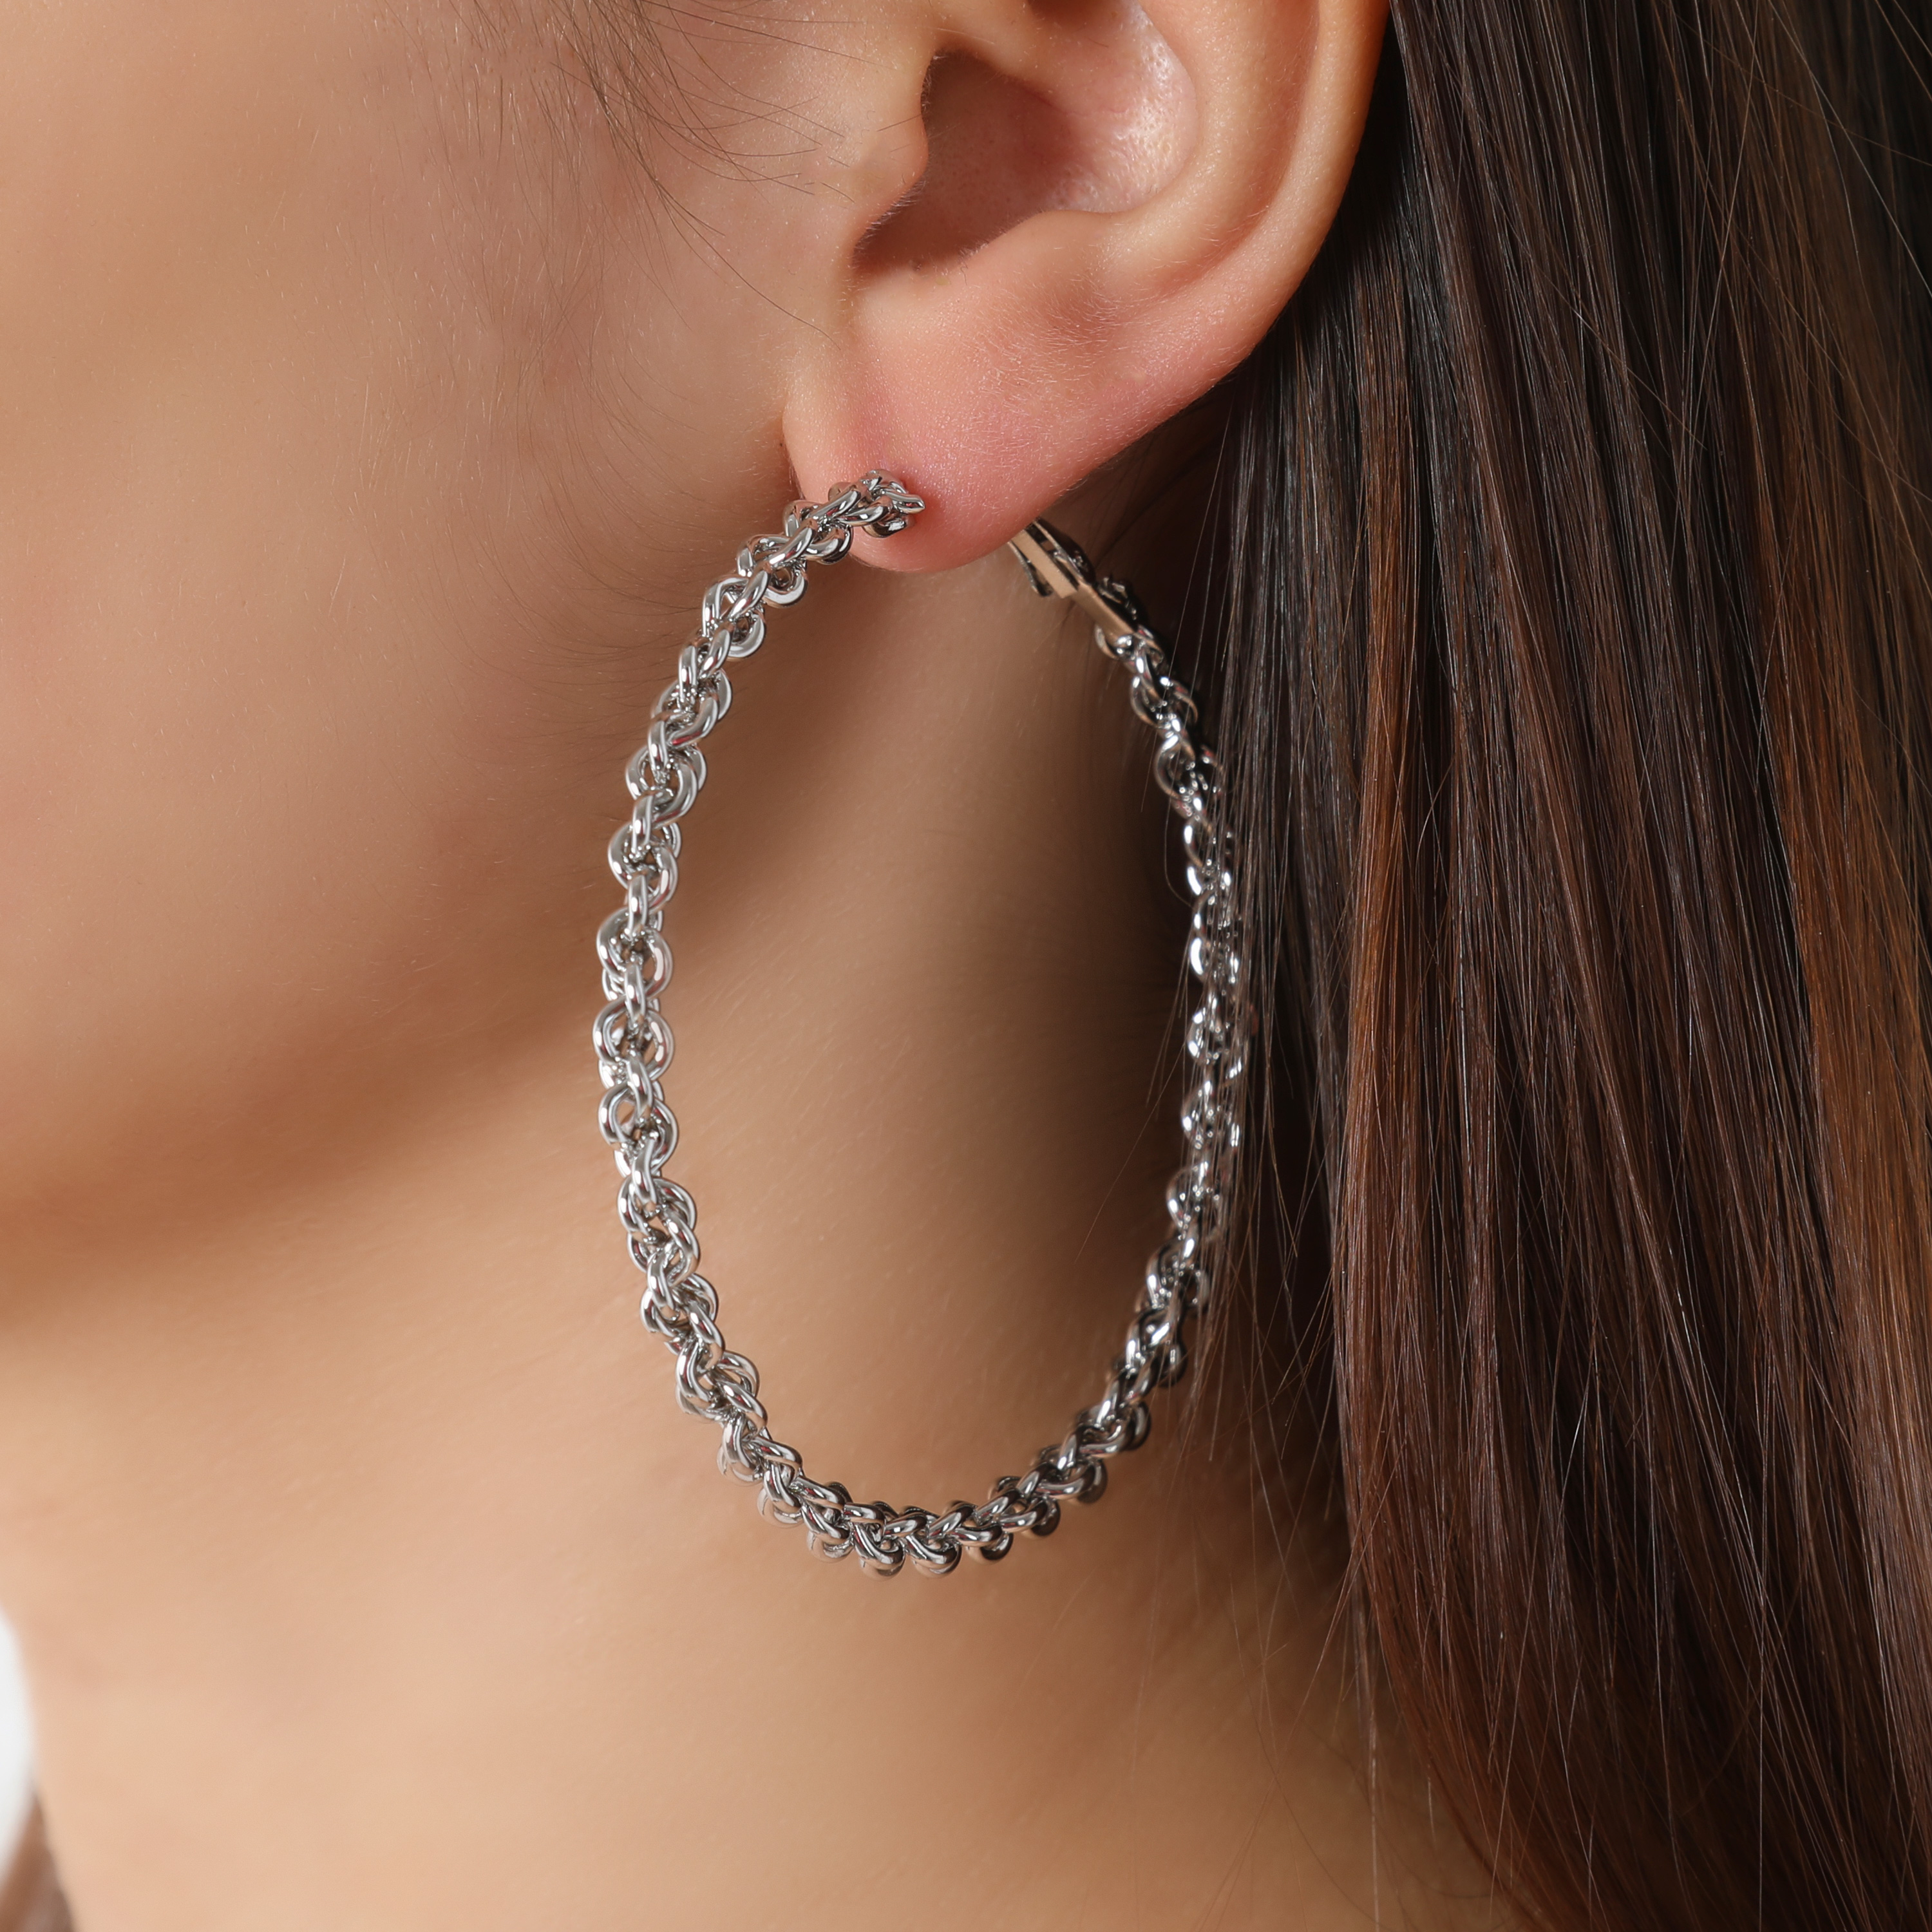 Thin Twisted Hoop Earrings In Silver